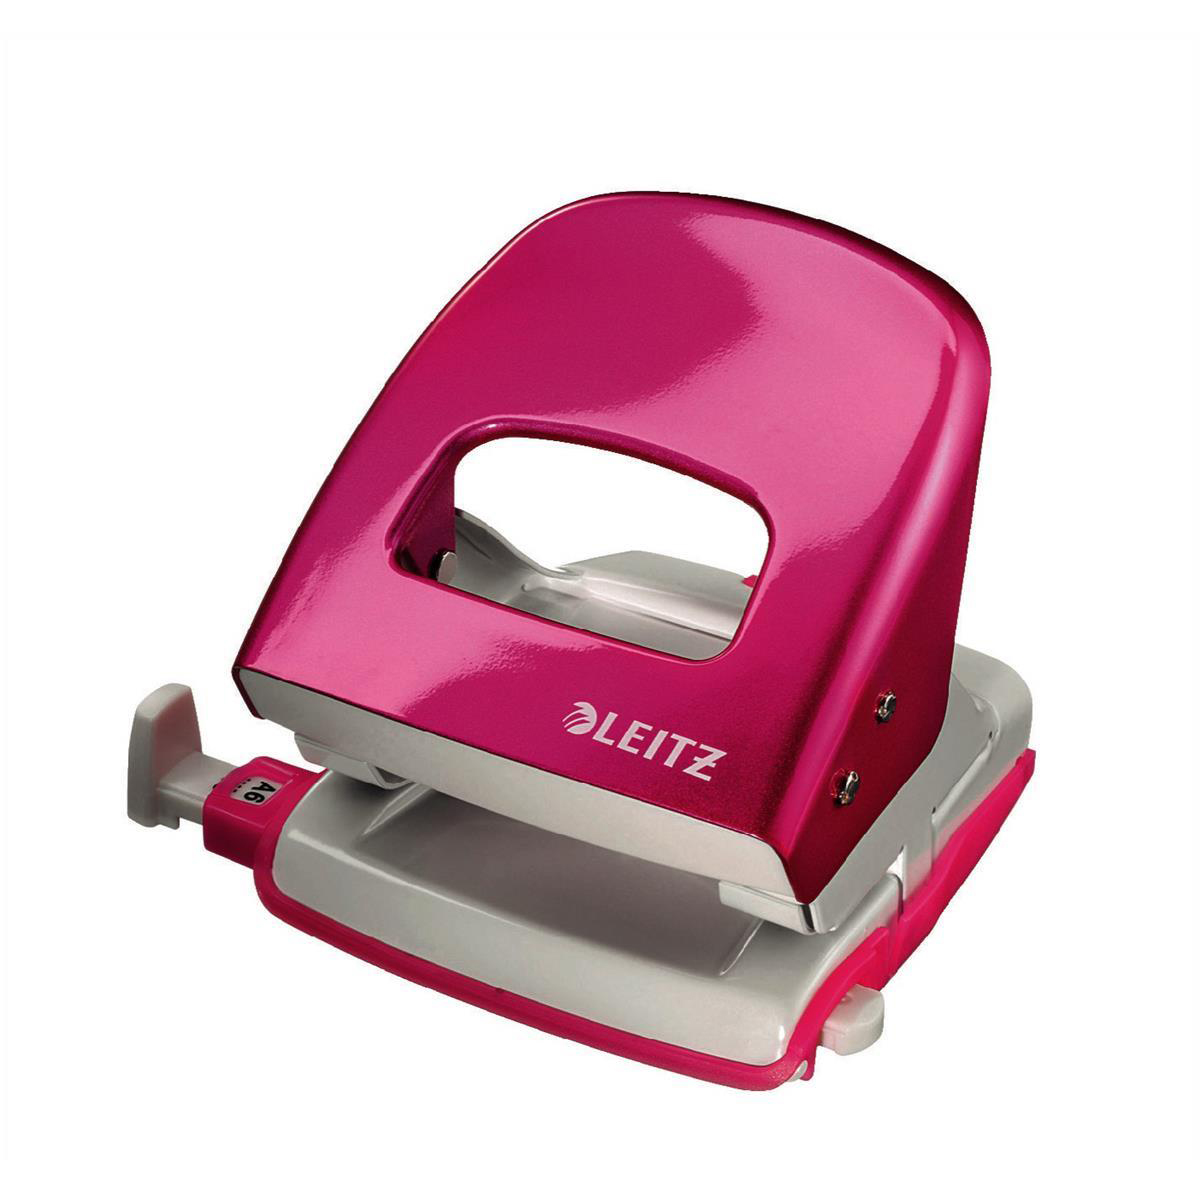 Hole Punches Leitz NeXXt WOW Hole Punch 3mm 30 Sheet Pink Ref 50081023L [REDEMPTION] Apr-Jun20